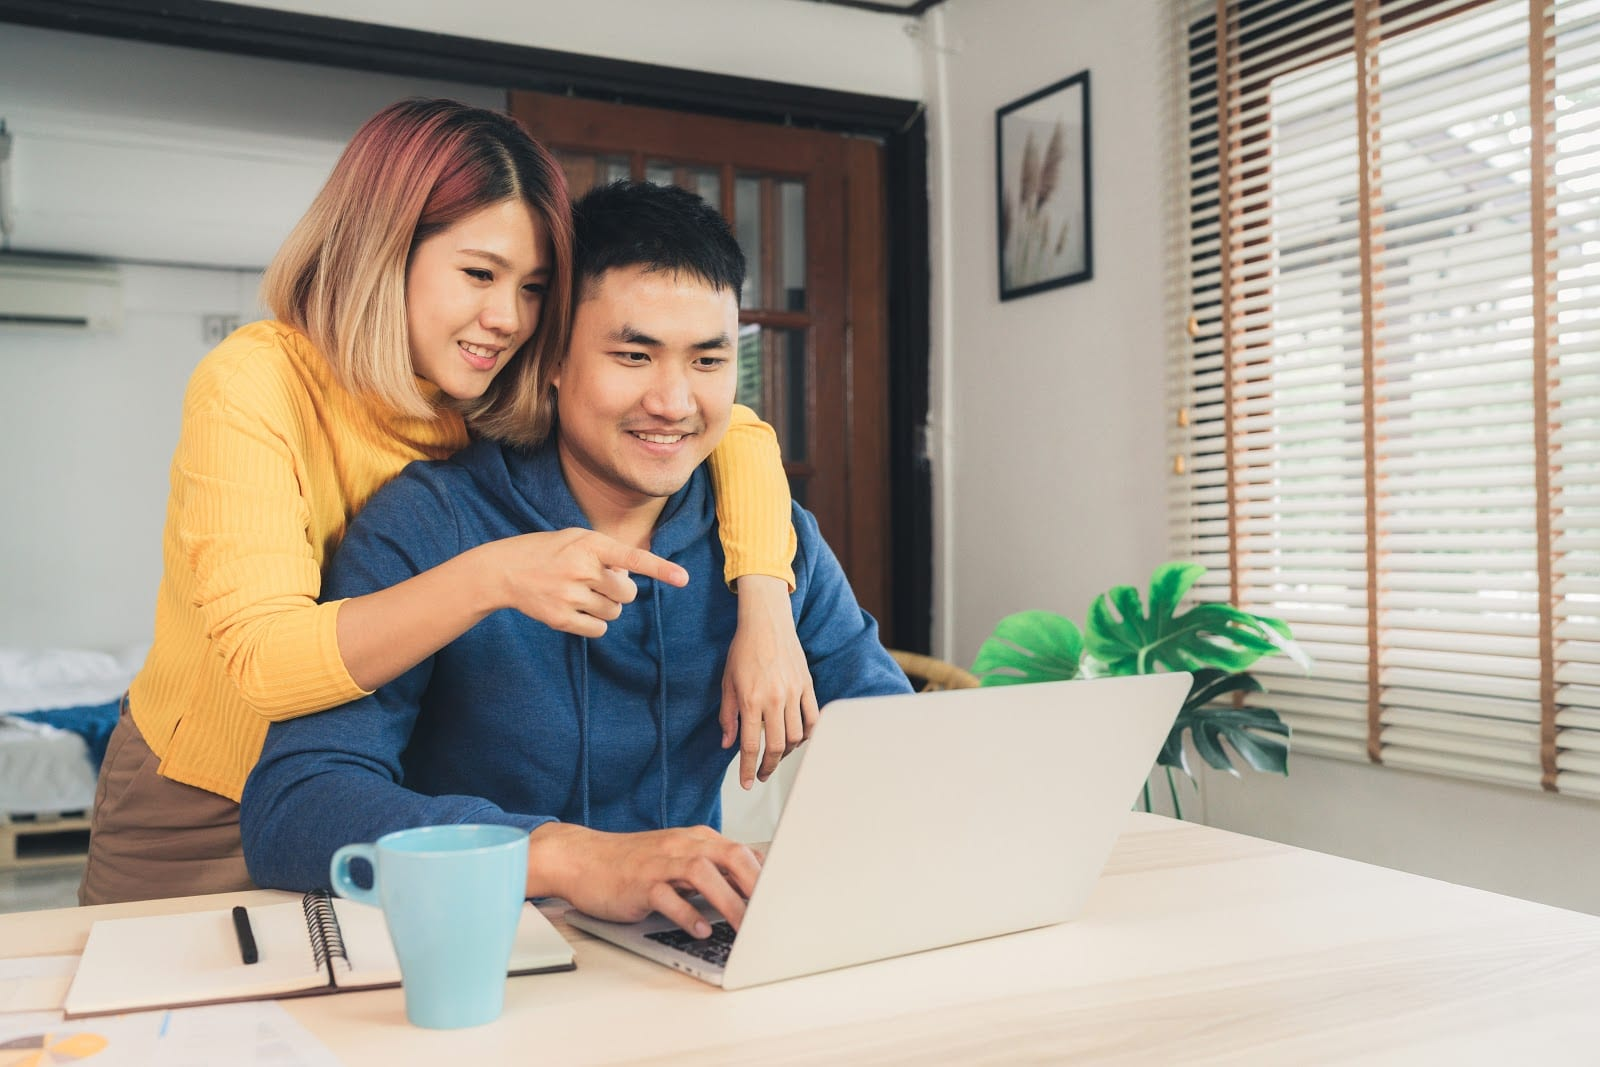 couple looking at computer together